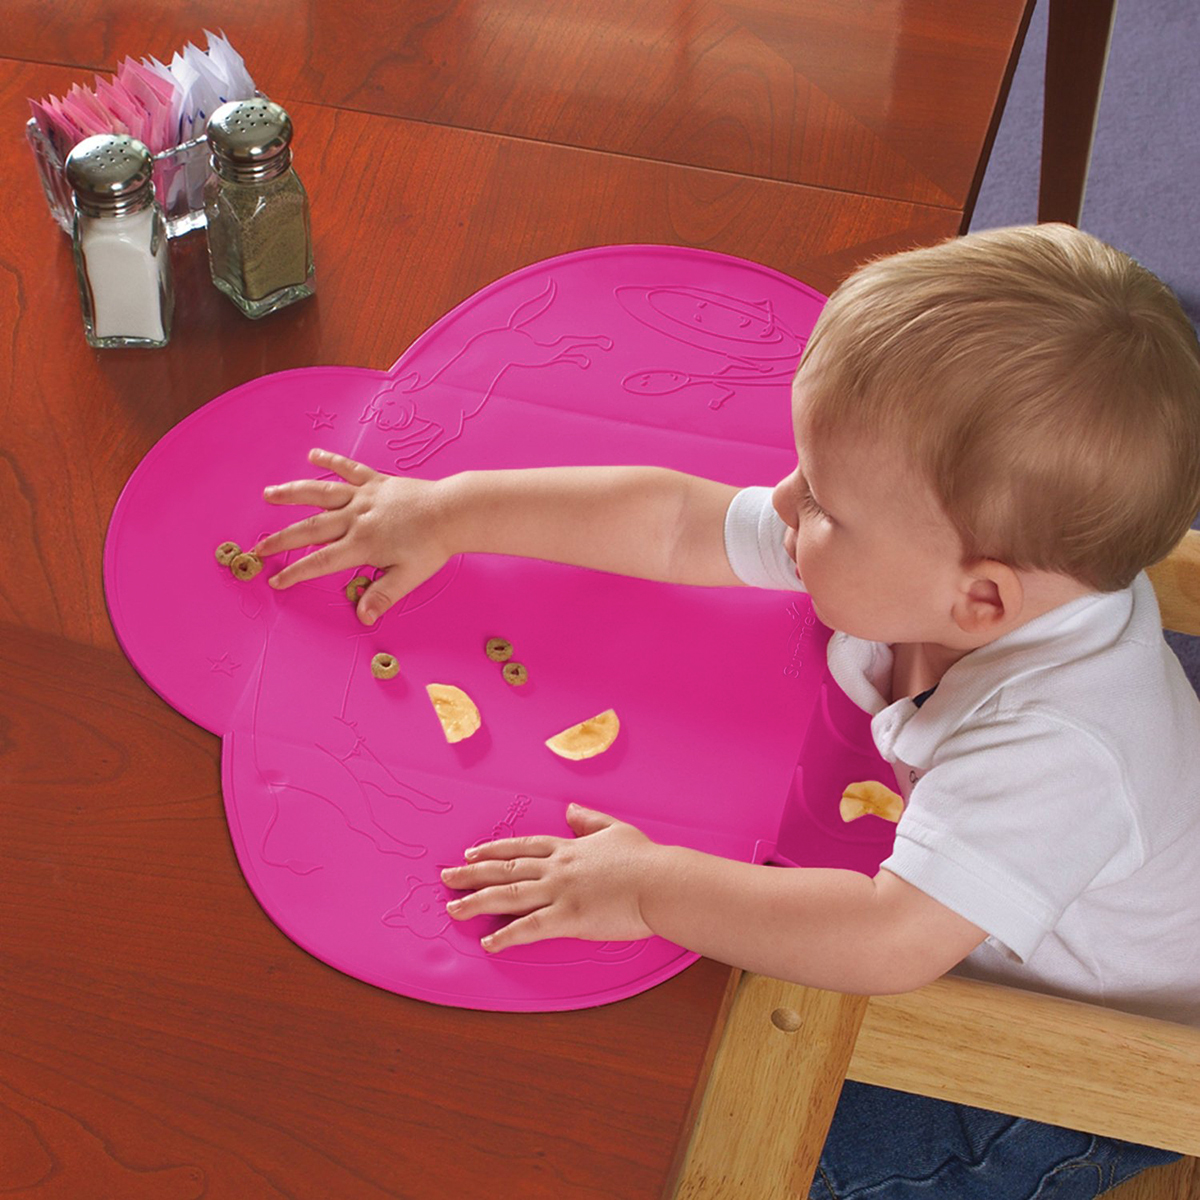 Waterproof Silicone Baby Bib Table Mat Silicone Pad Infant Diner Portable  Placemat For Kids Baby Feeding Baby Place Mat In Mats U0026 Pads From Home U0026  Garden On ...